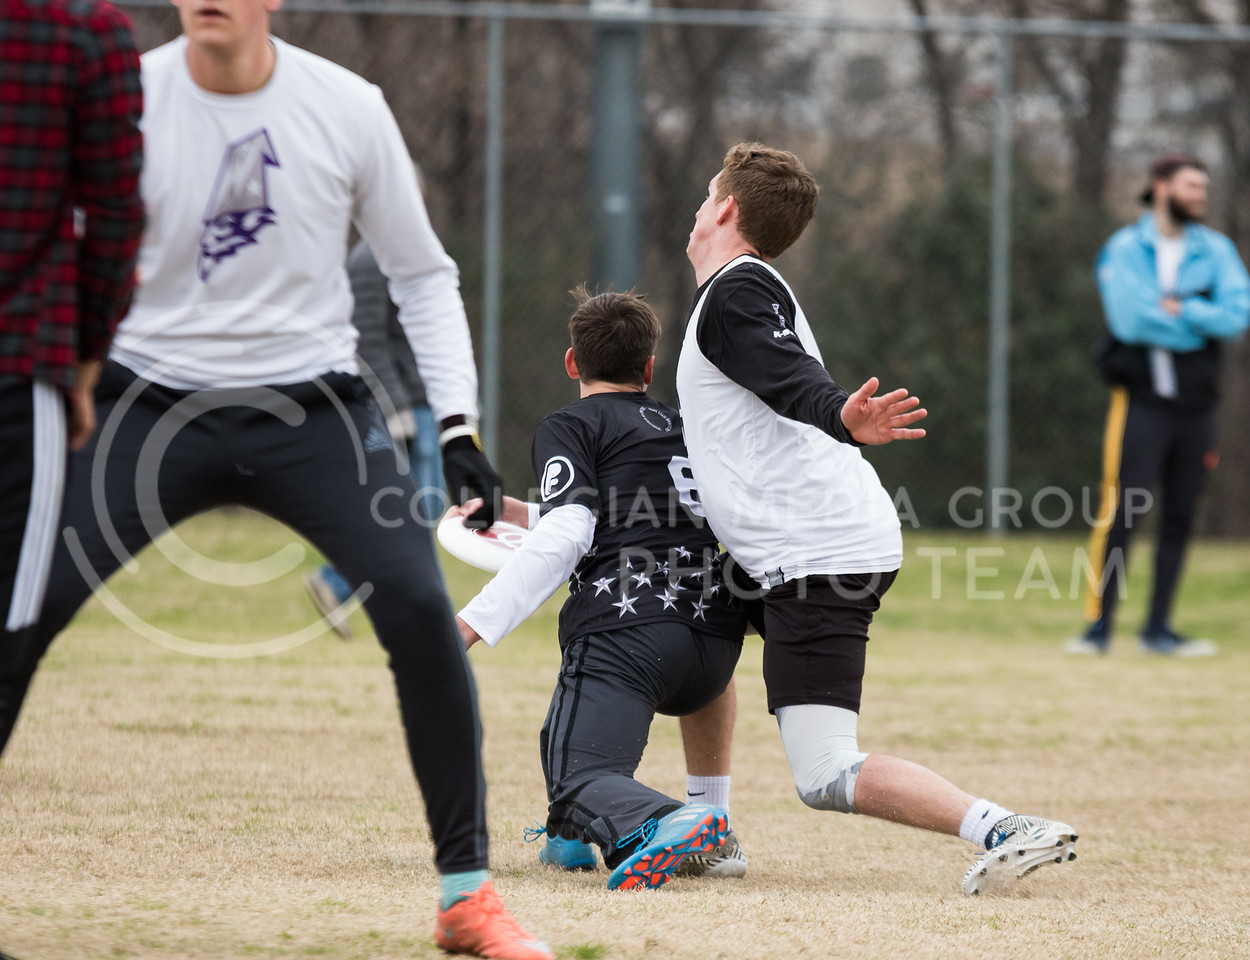 Freshman in Kinesiology, Samuel Nelson defends a thrower at the K-State Wizards' Ultimate Frisbee tournament in Denton, Texas on Feb. 4, 2017. (John Benfer   Royal Purple)